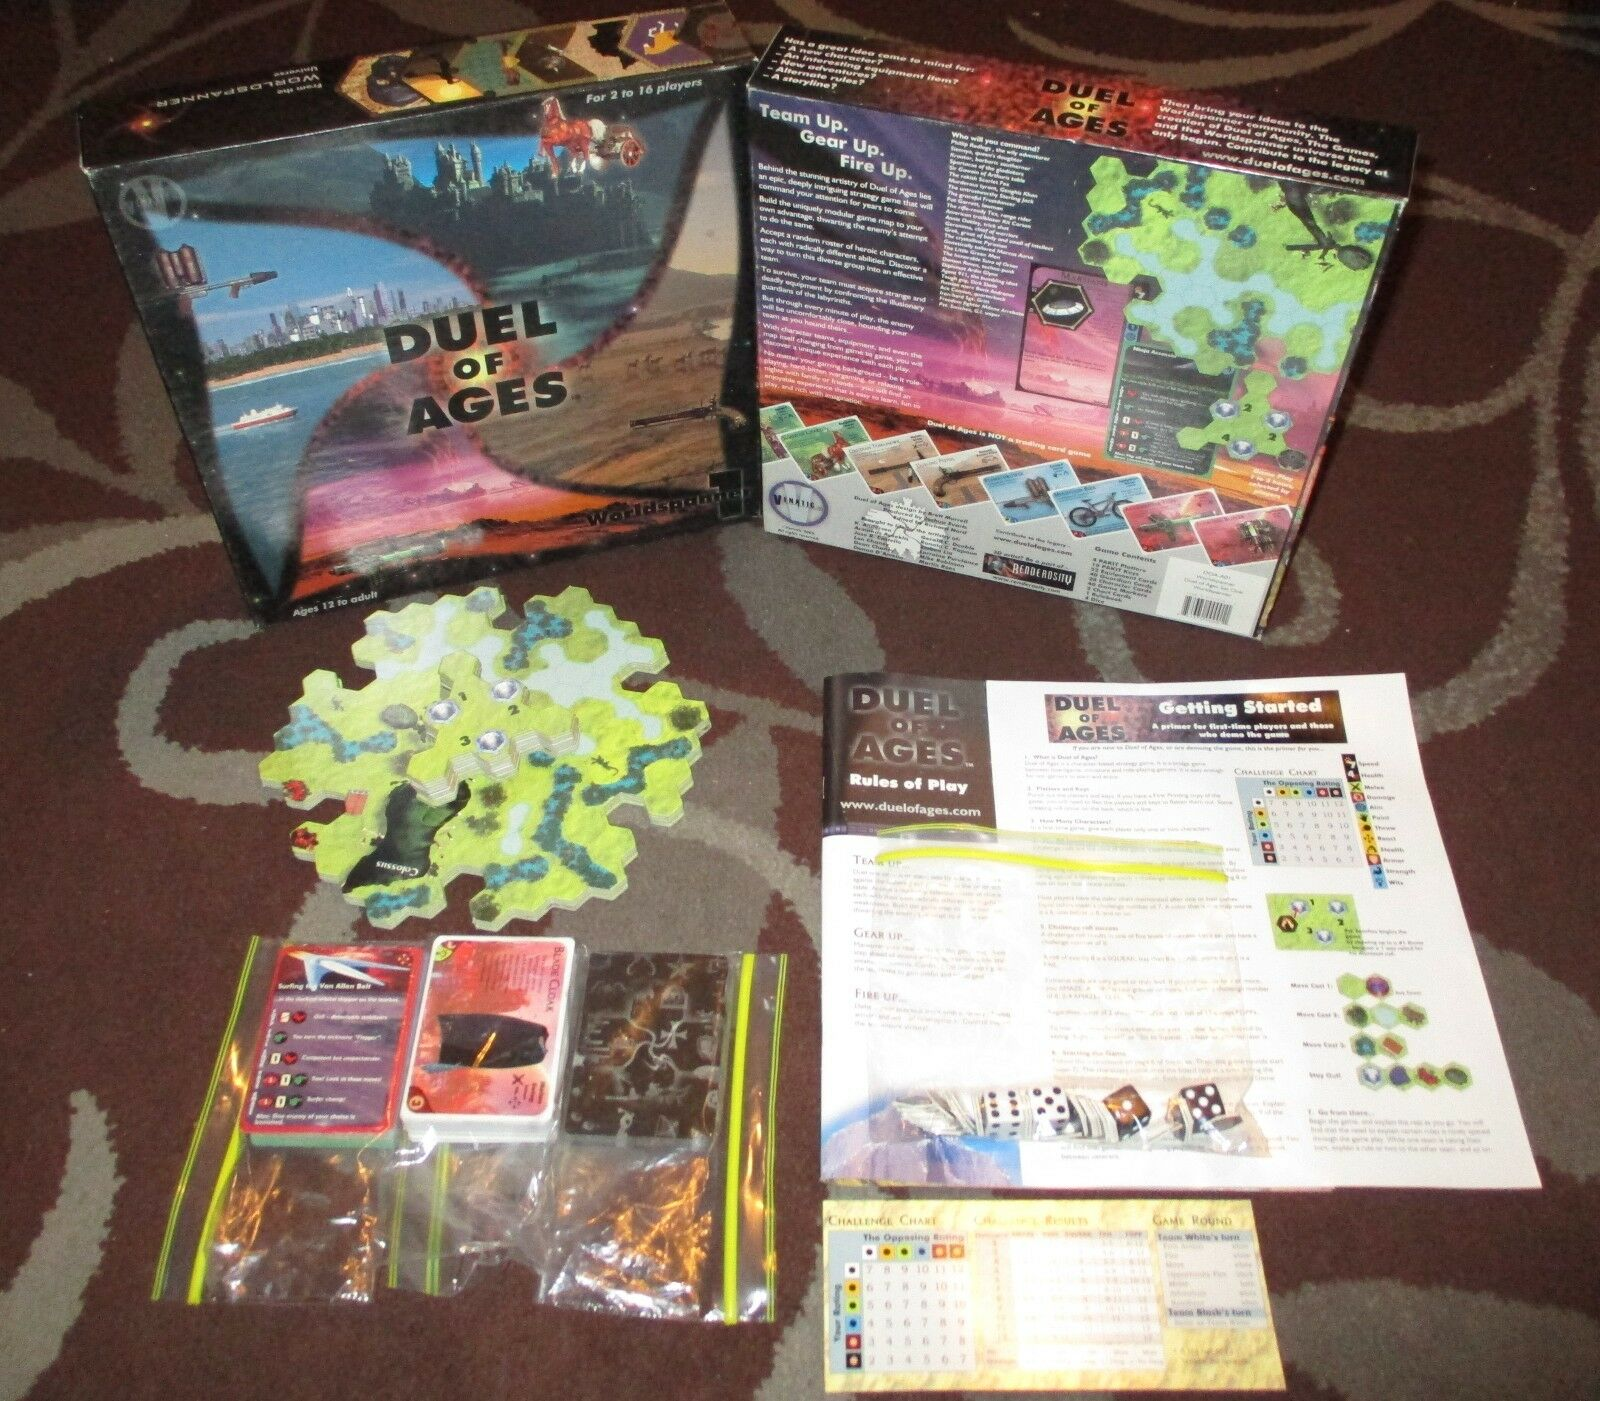 Duel of Ages Worldspanner 1  PAKIT tavola gioco Venatic 2002 DOA-A01  n ° 1 online